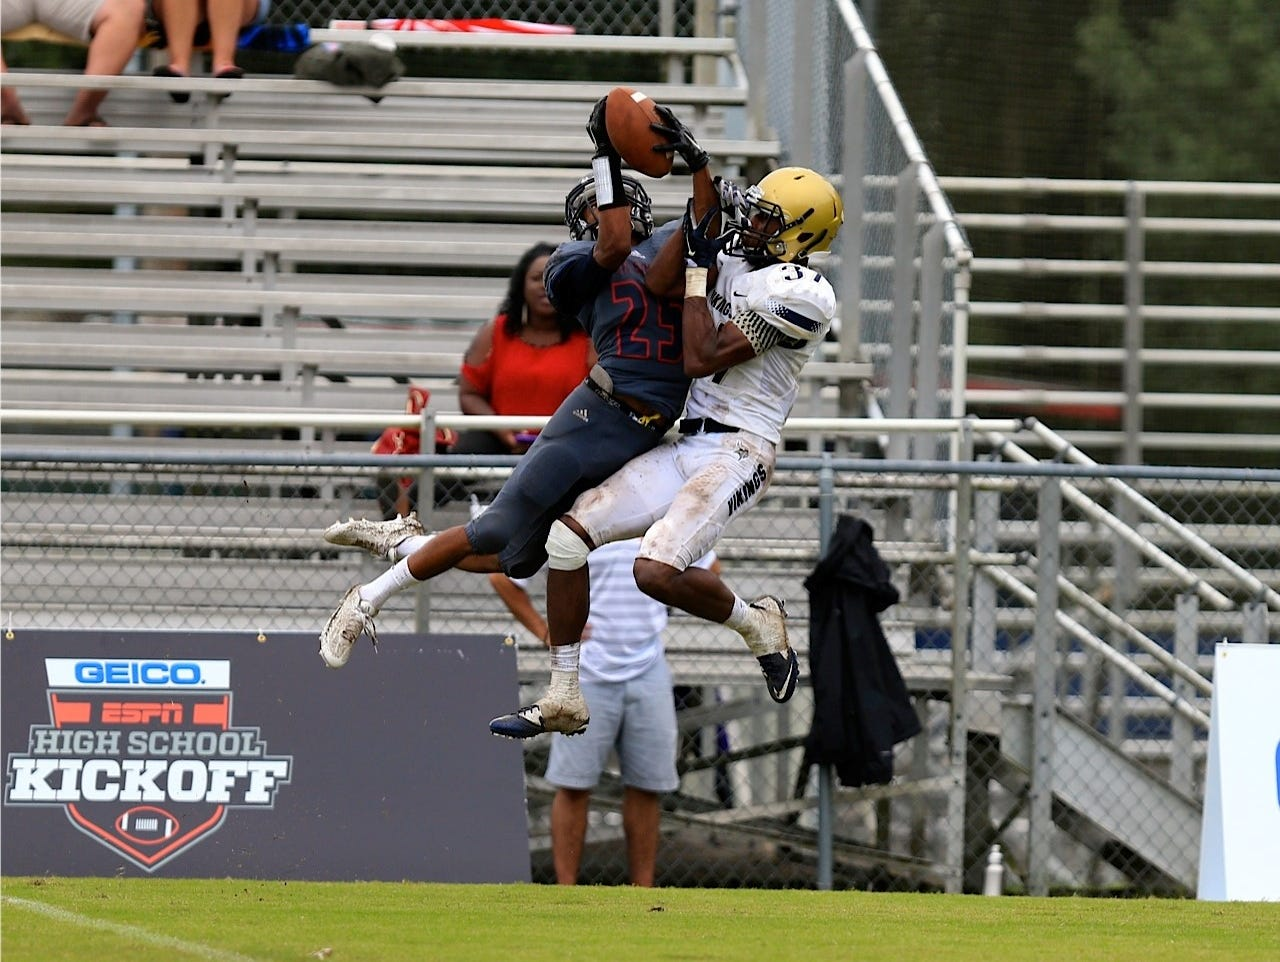 Wakulla receiver Kelton Donaldson goes up and gets the ball to make a spectacular catch in Saturday's game against Spartanburg.